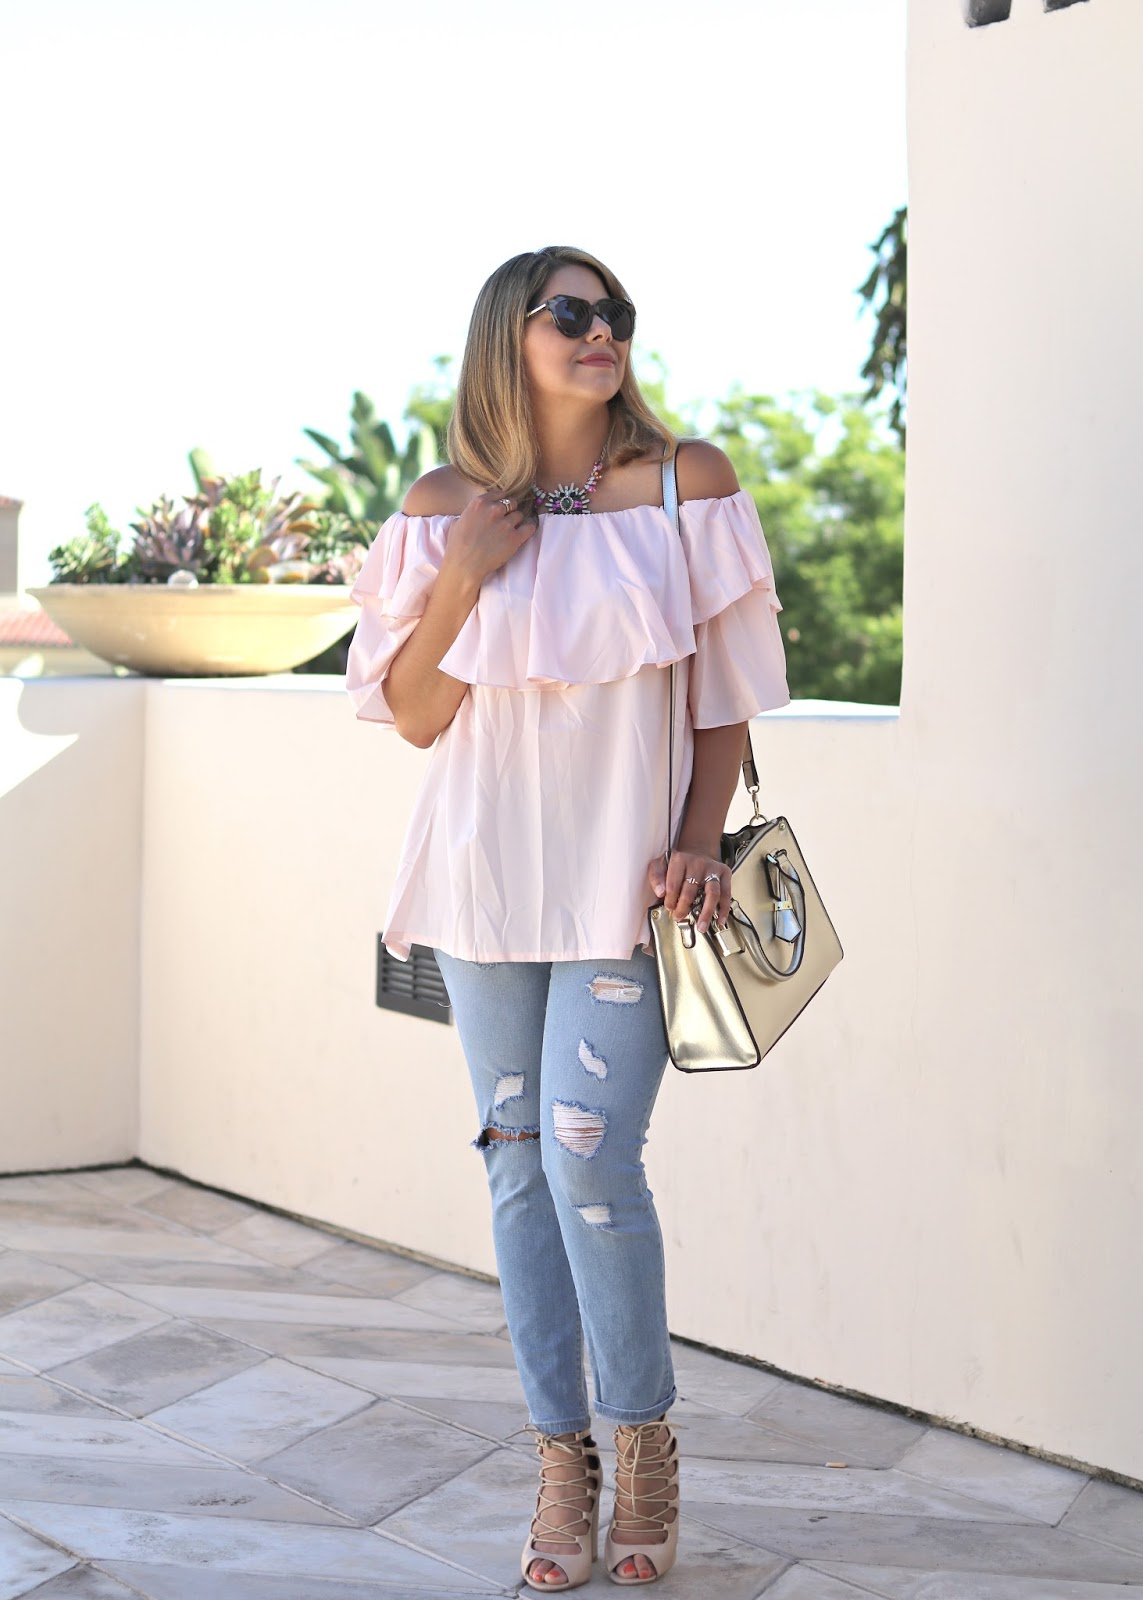 casual outfit idea, statement necklace outfit idea, galian tote blogger, galian handbags blogger